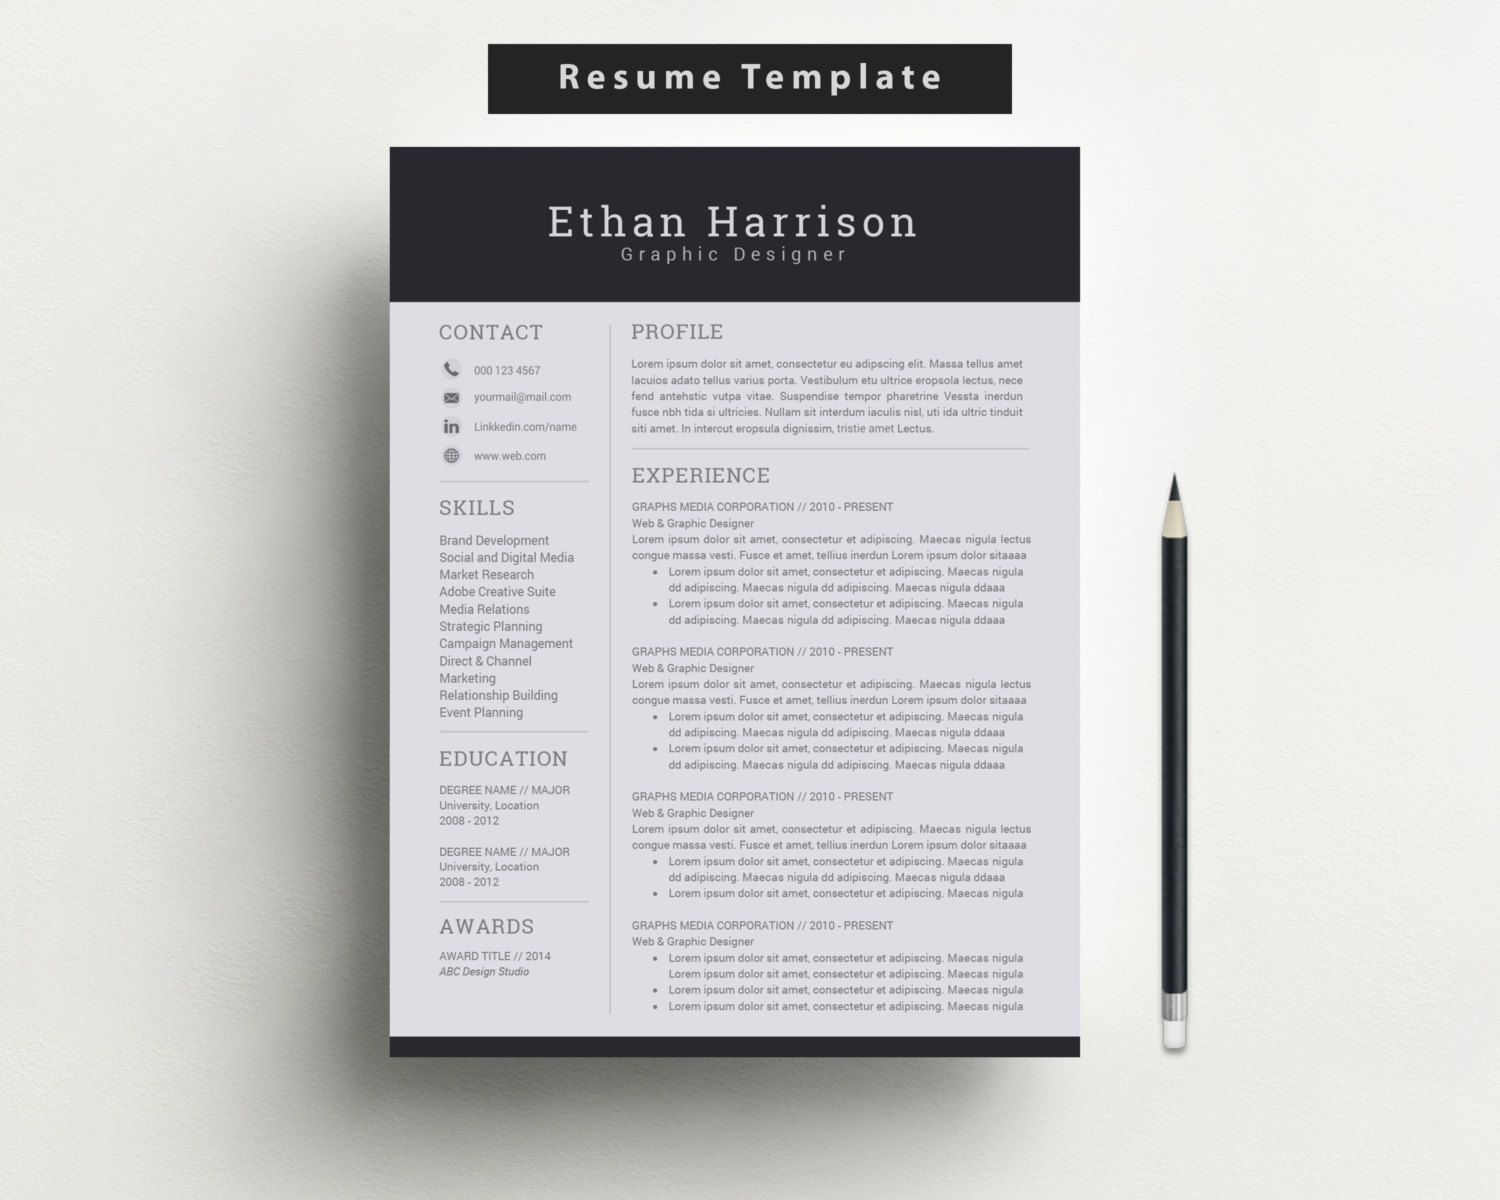 Professional Resume And Cover Letter Template For Word  Modern